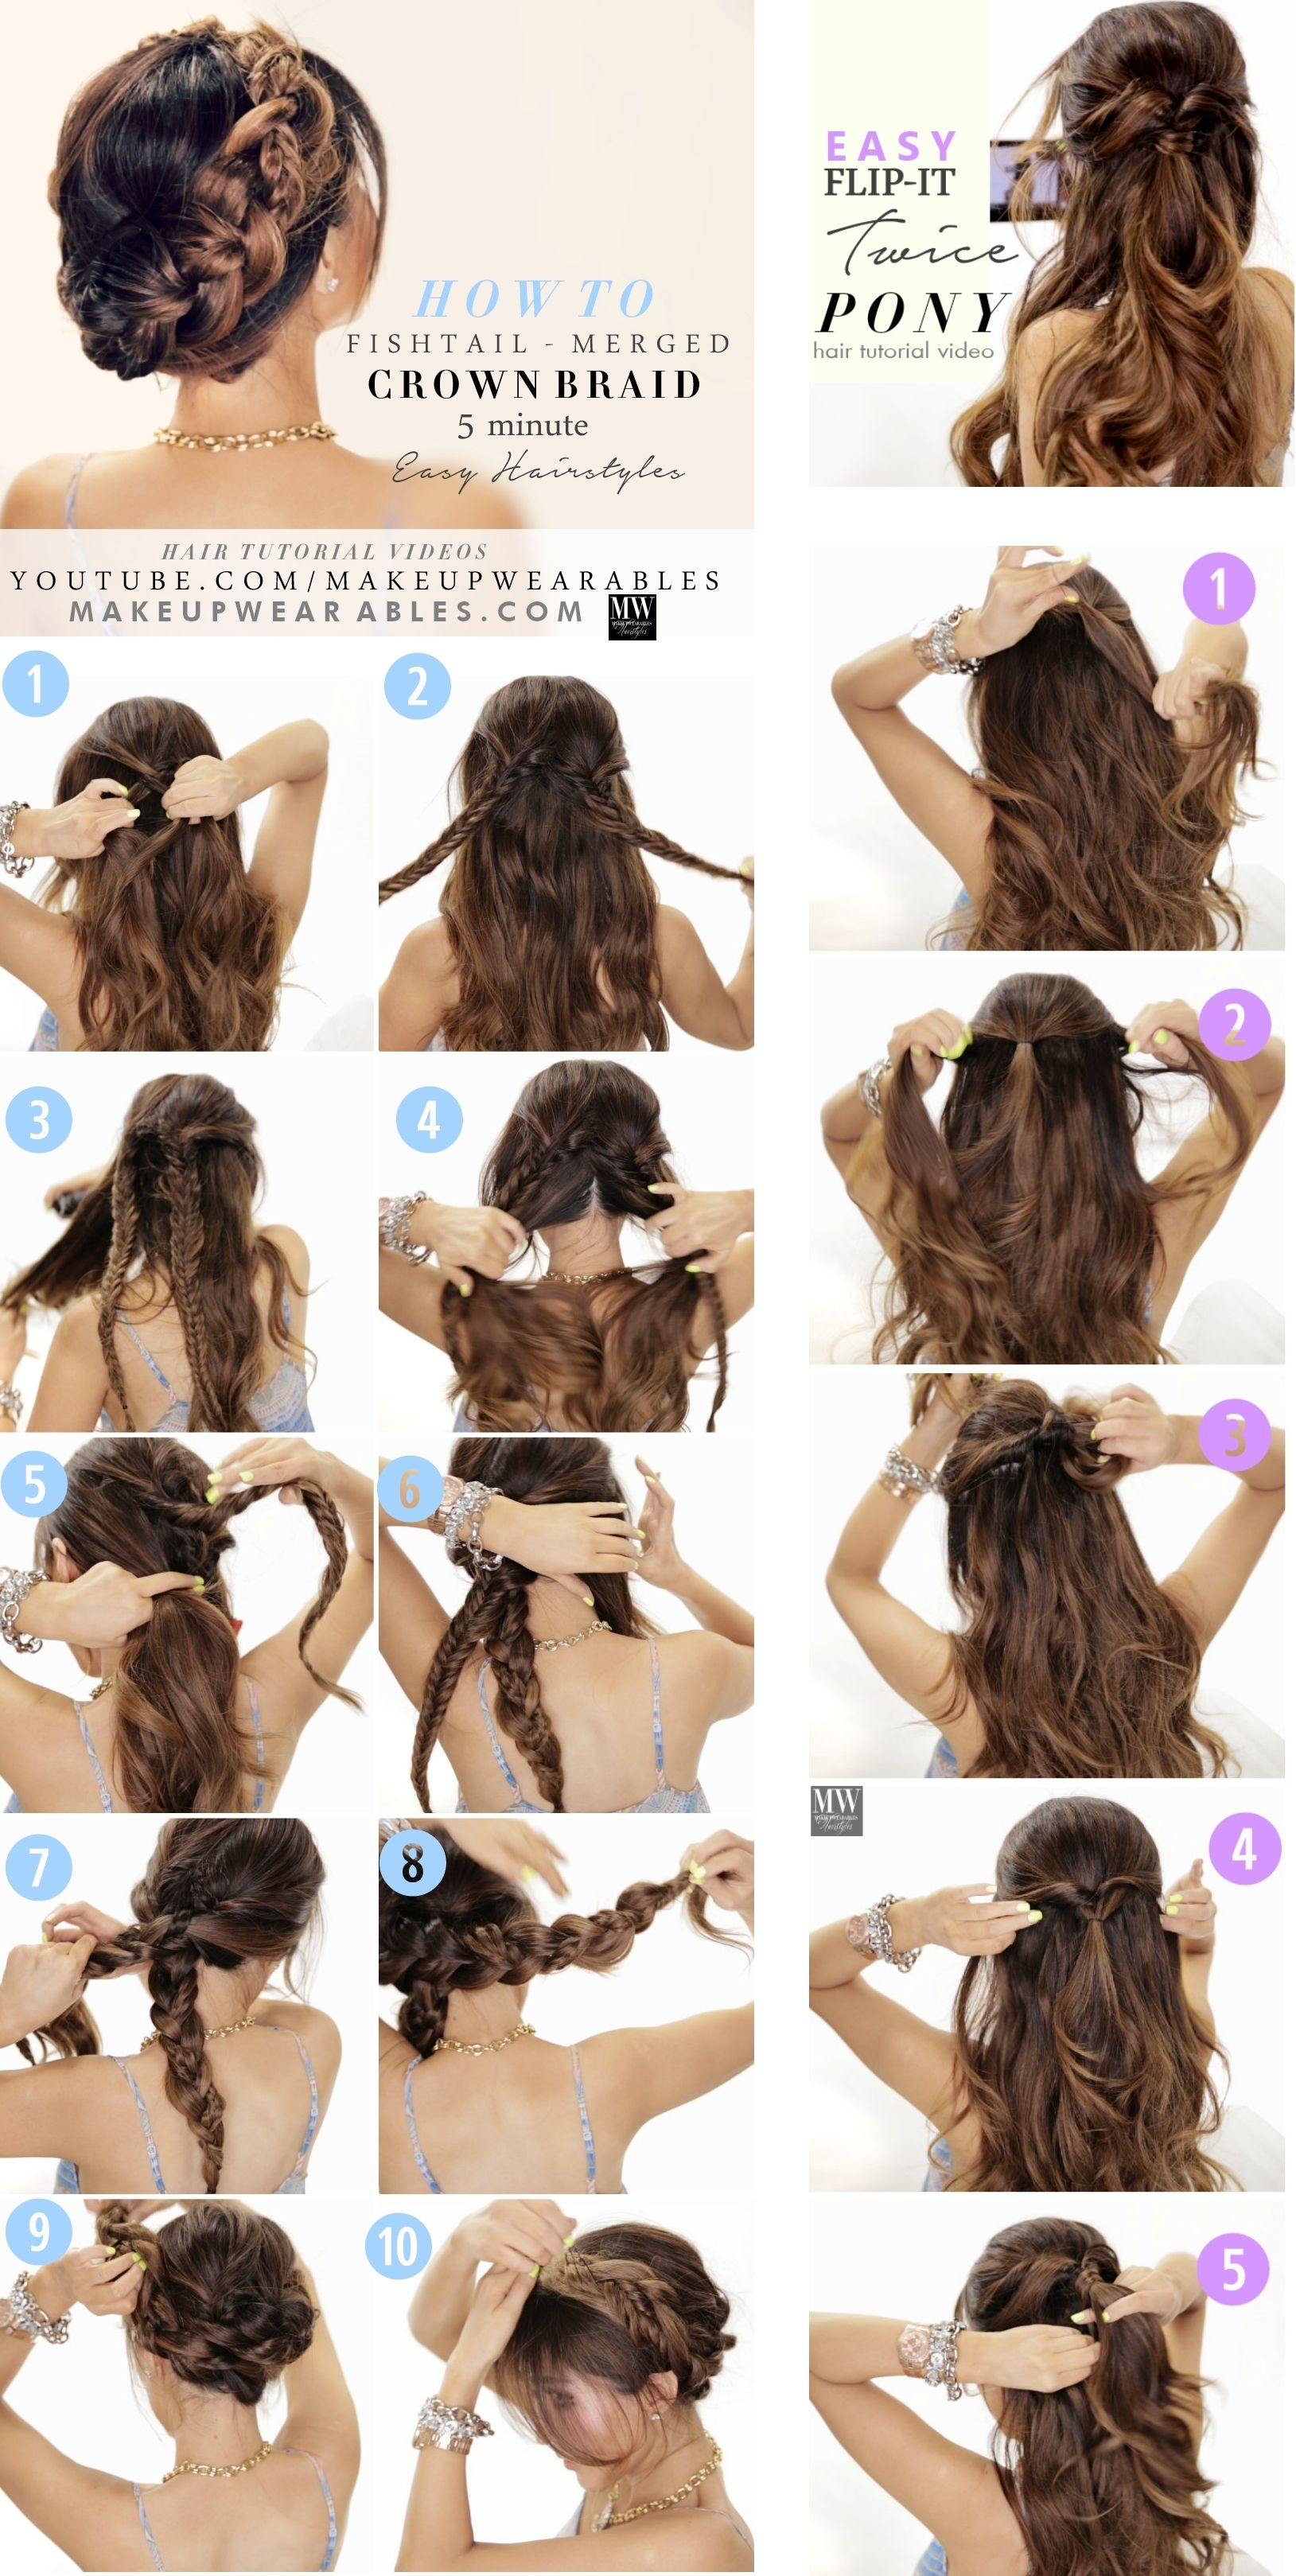 3 Amazingly Easy Back To School Hairstyles With Merged Braids Long Hair Styles Easy Hairstyles Hair Styles